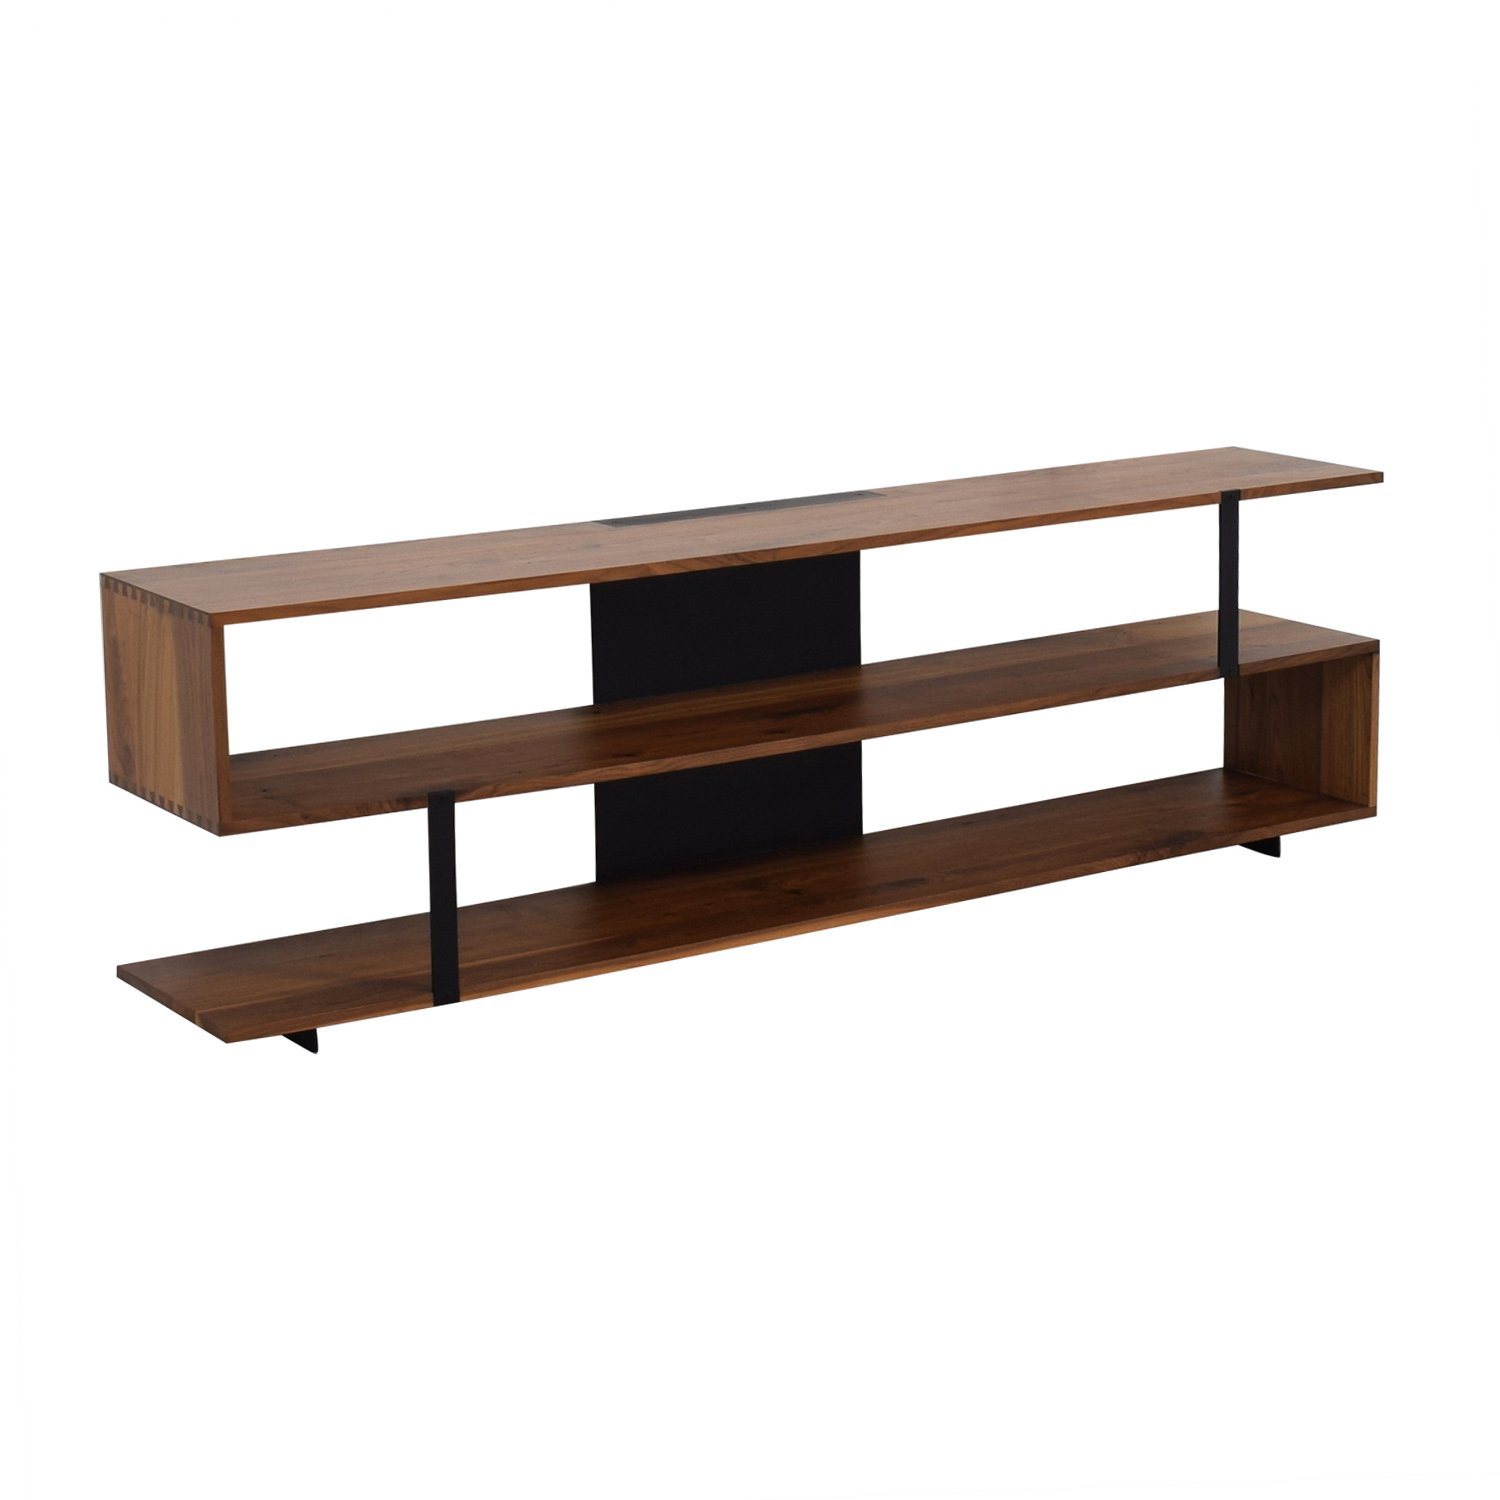 Crate & Barrel Crate & Barrel Wood Media Stand Brown, Black